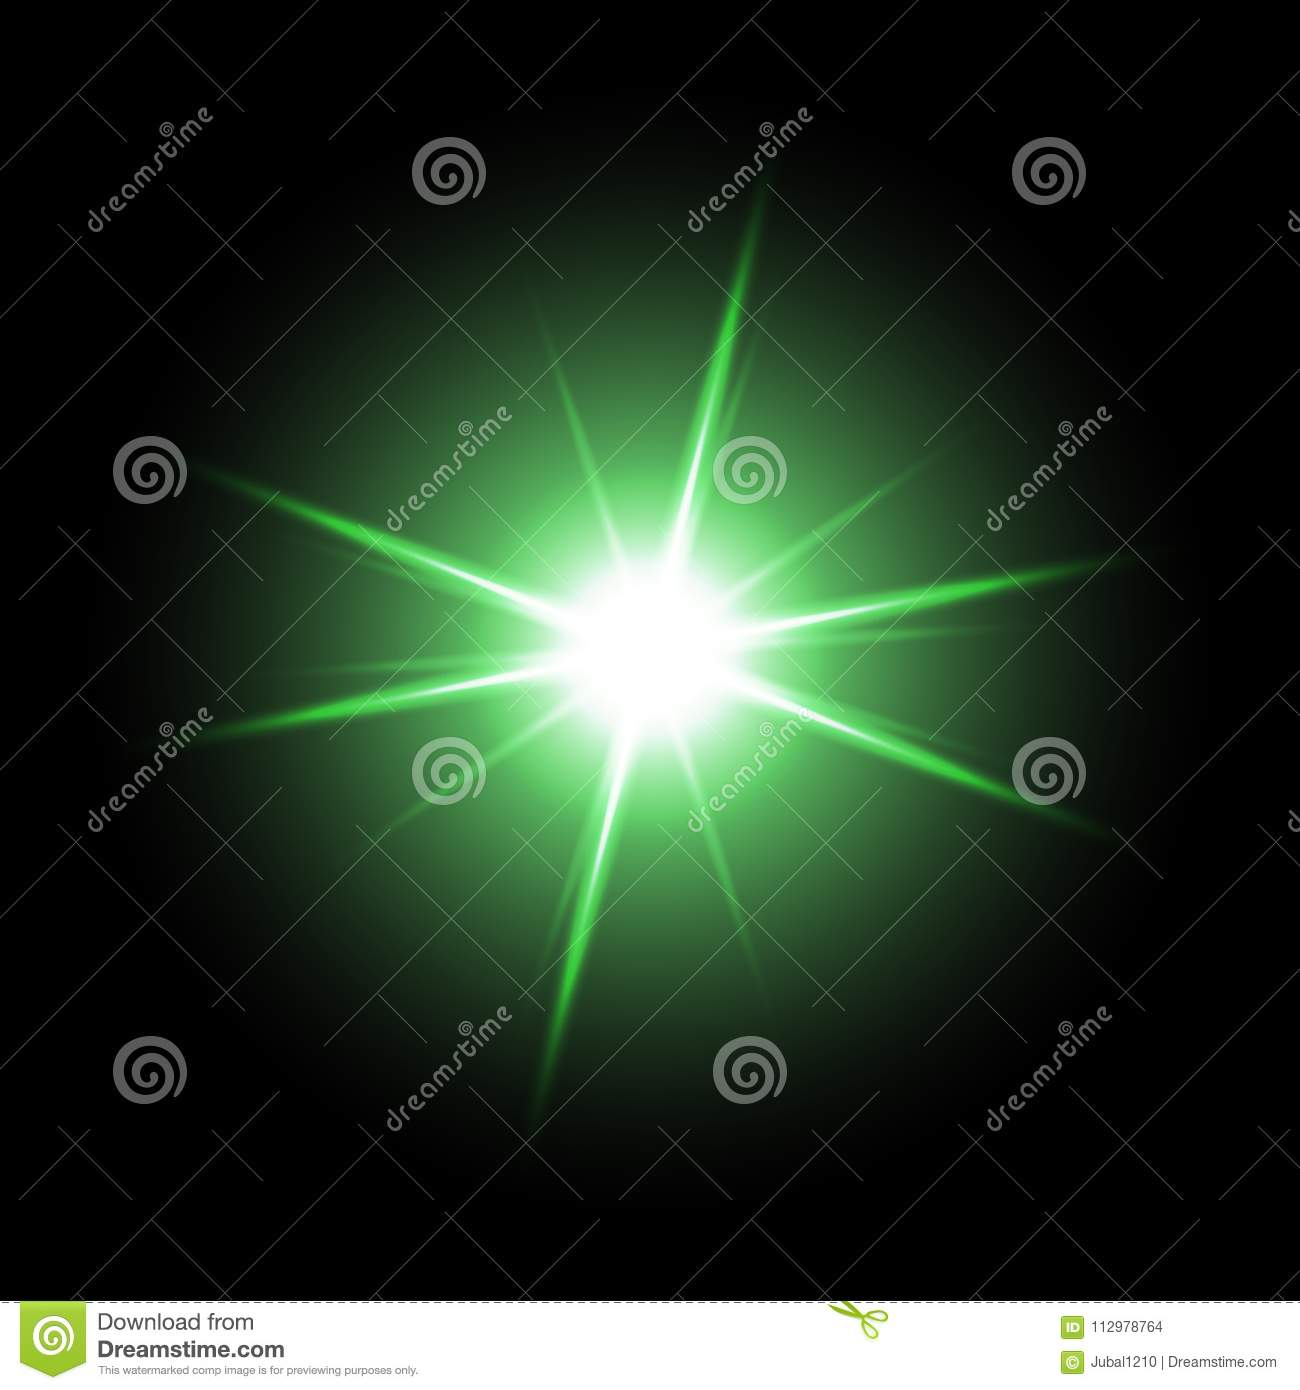 Shining star on black background, green color